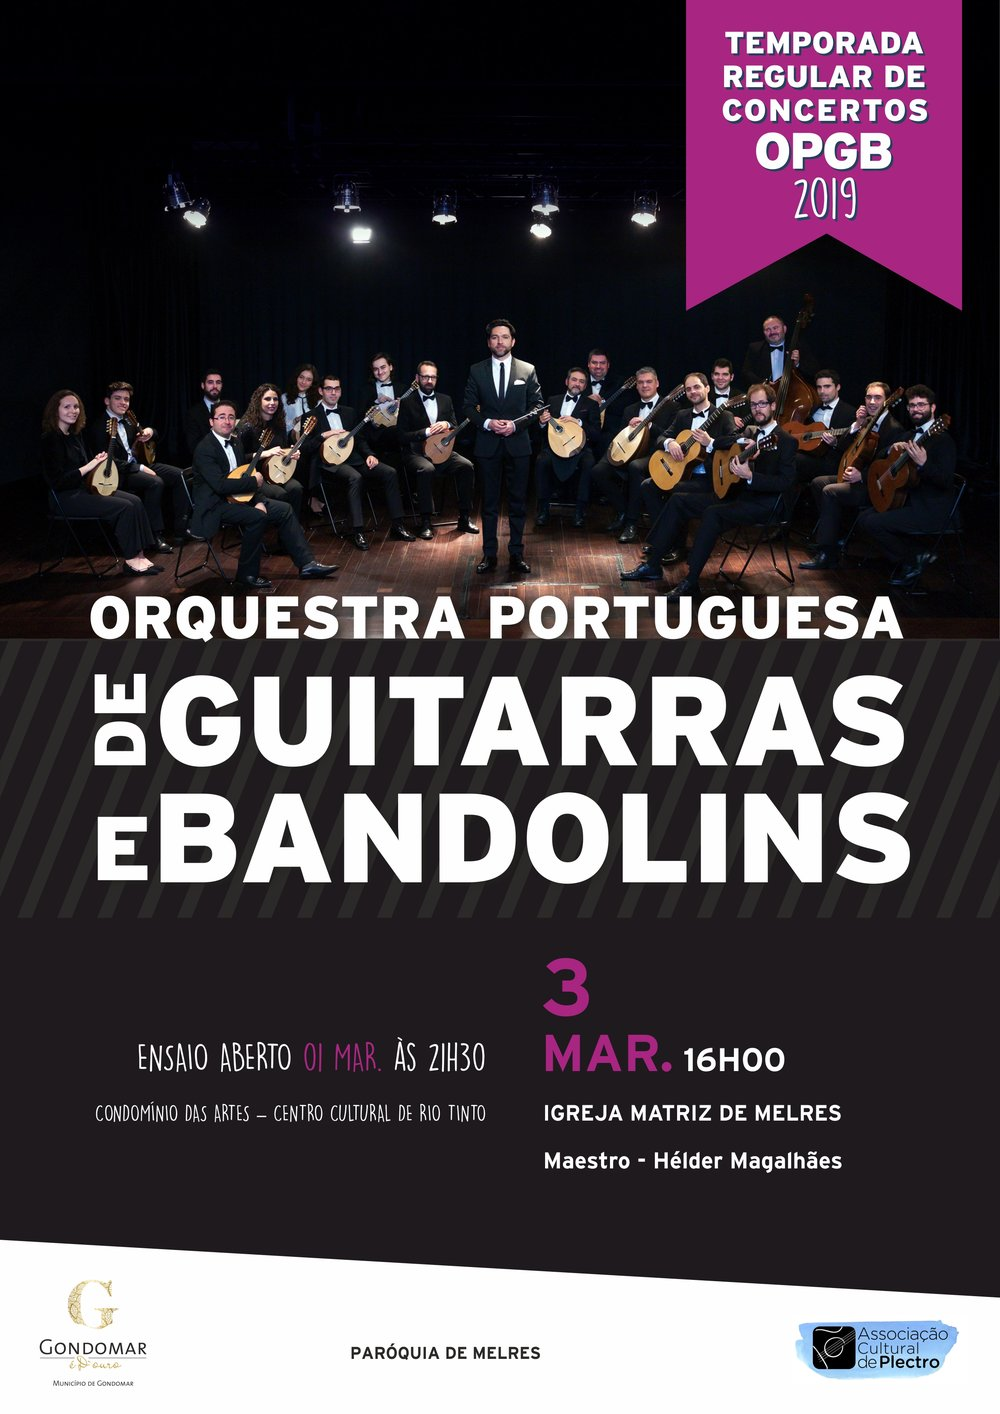 Cartaz Temporada Regular de Concertos OPGB 2019_3mar_melres.jpg